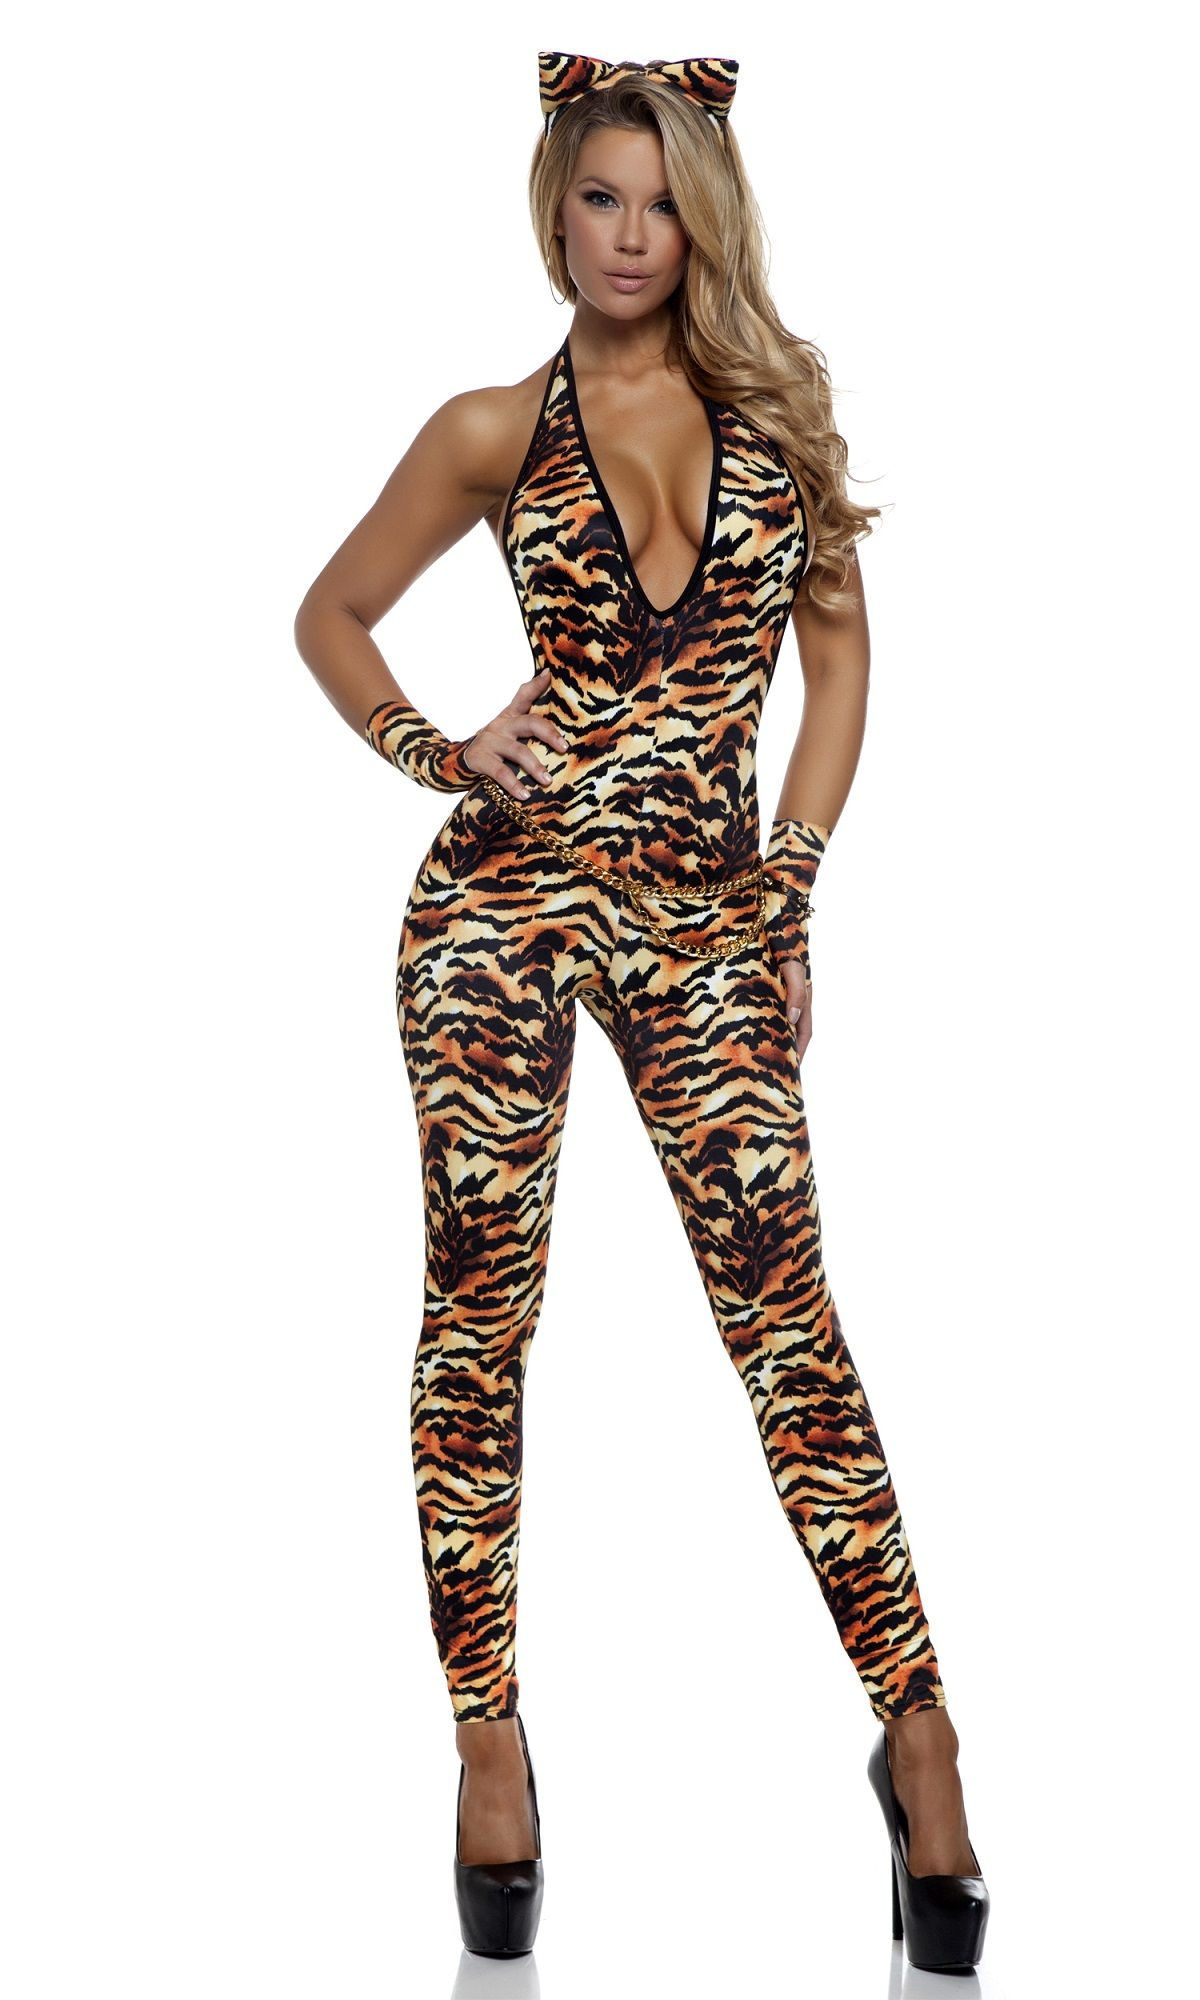 tantalizing tigress woman catsuit halloween costume - Tigress Halloween Costume